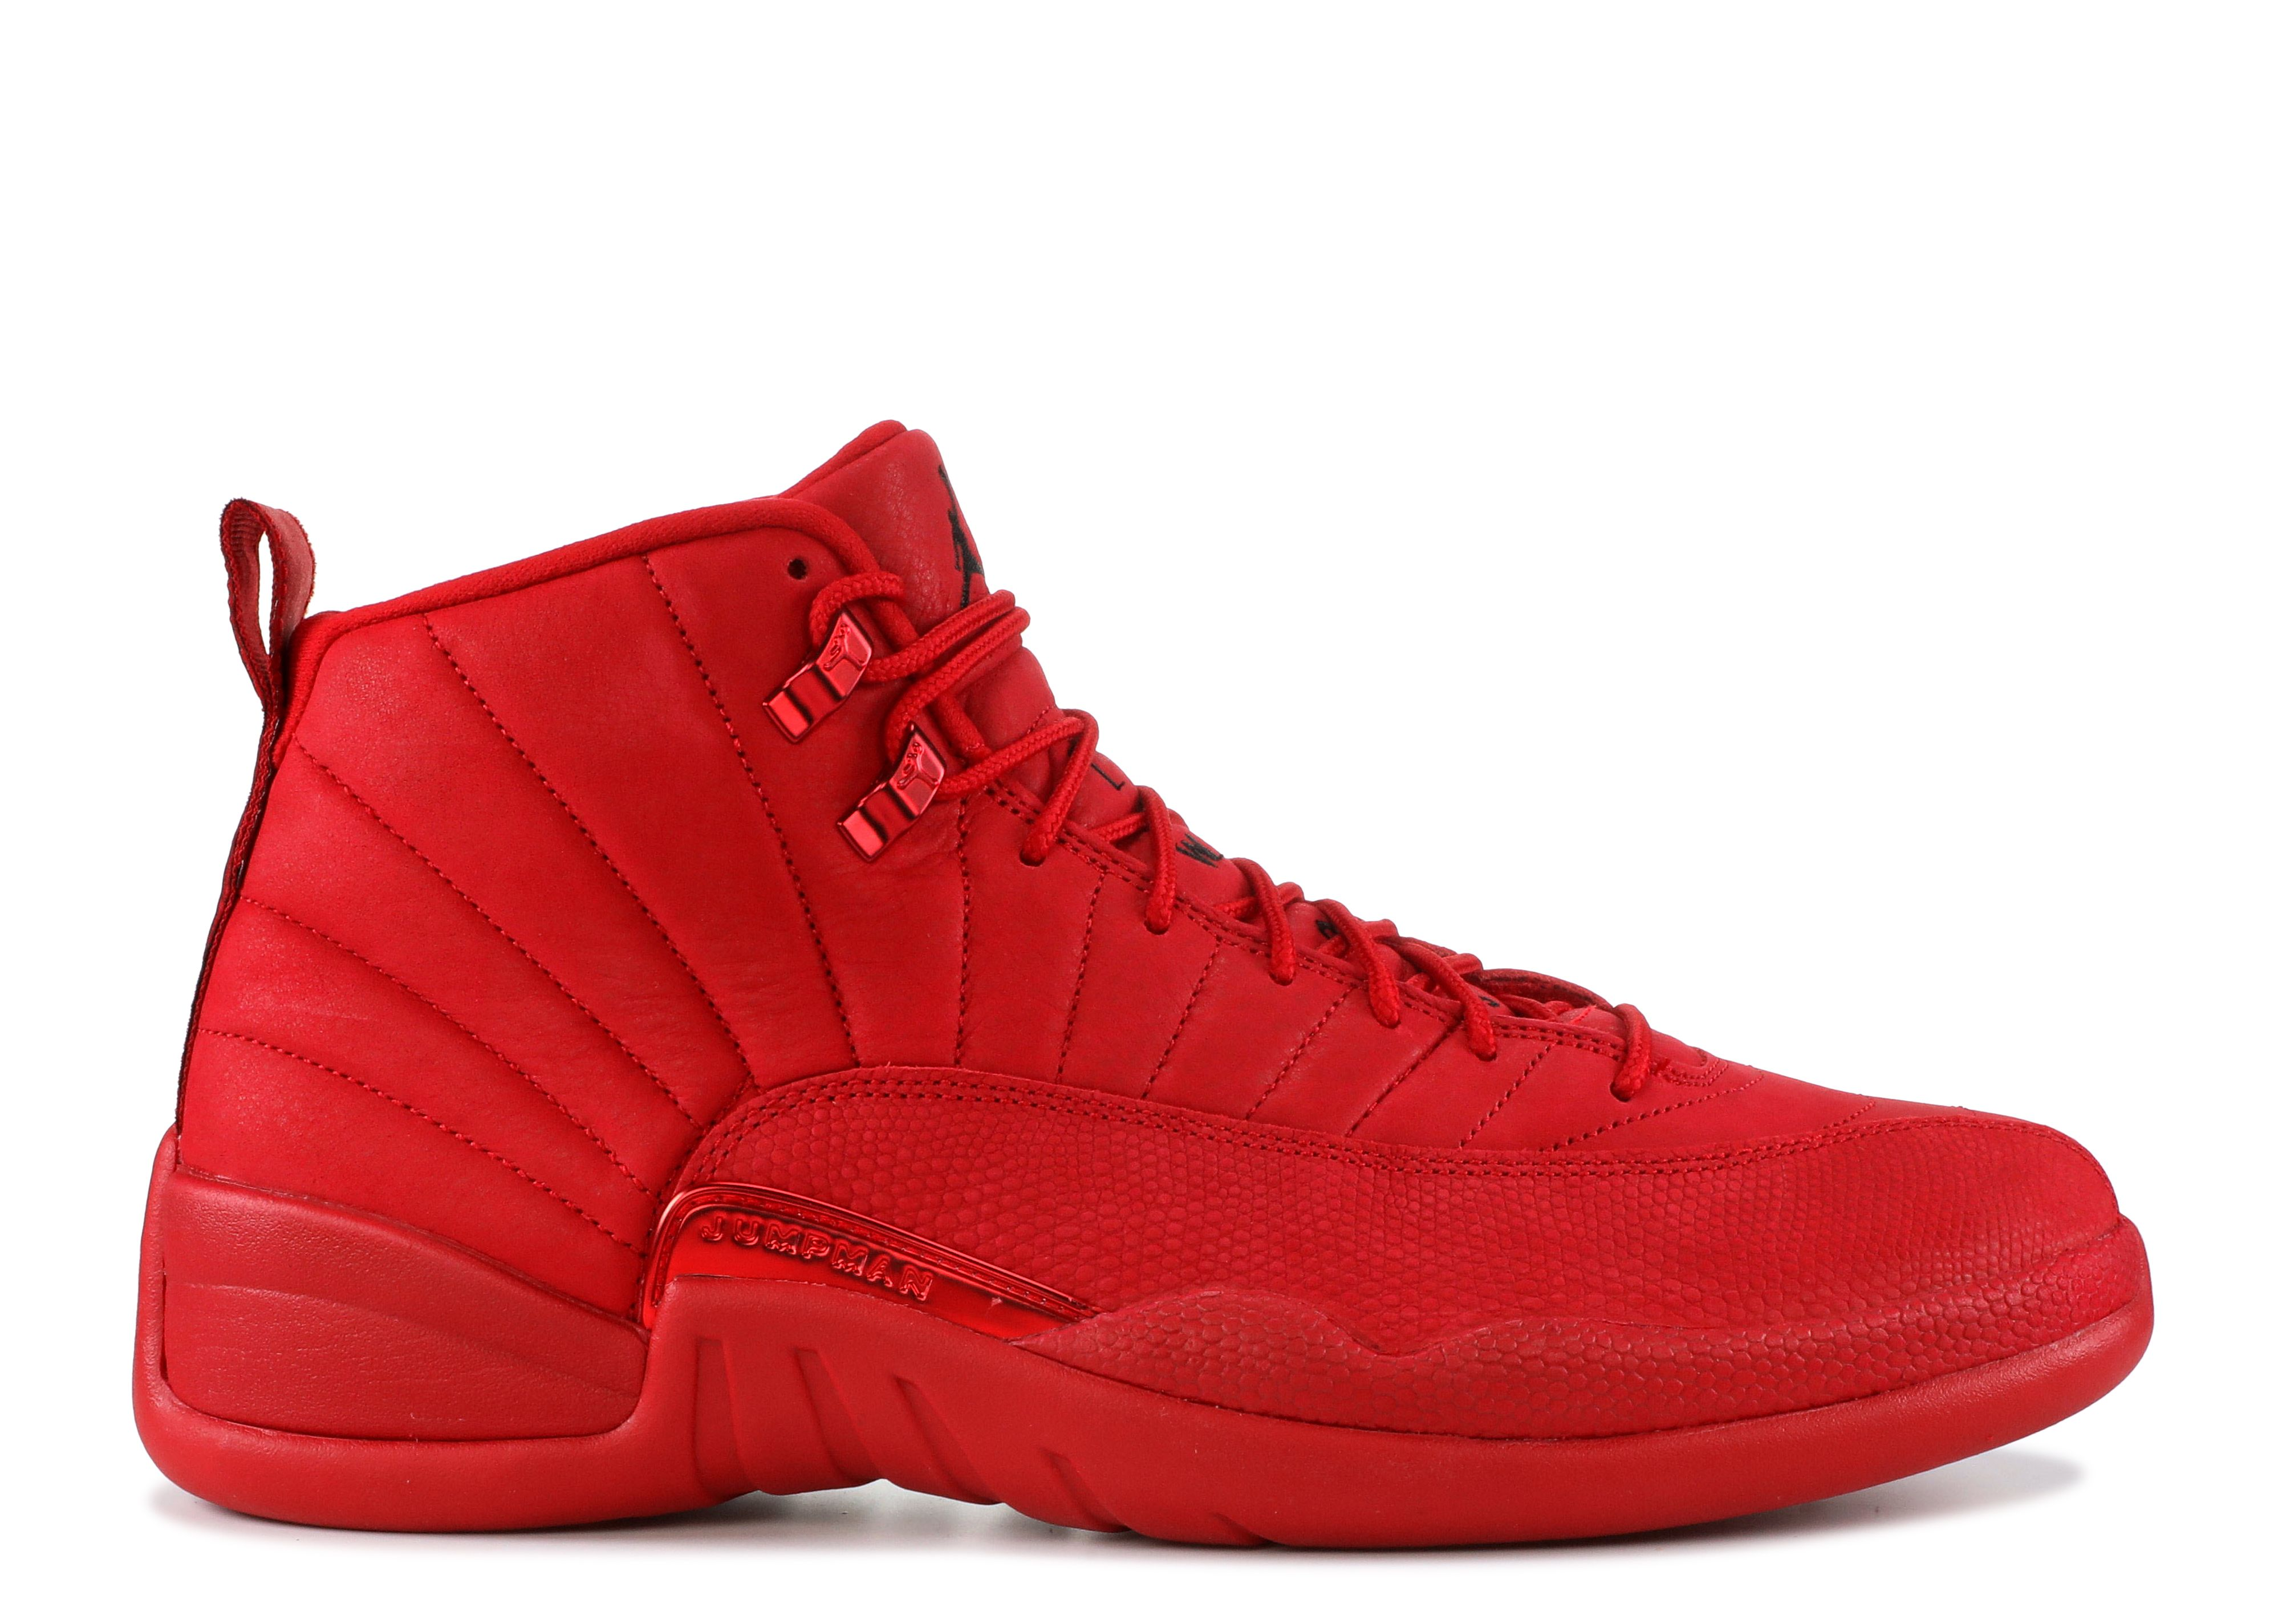 9842b2ad99c Air Jordan 12 Retro